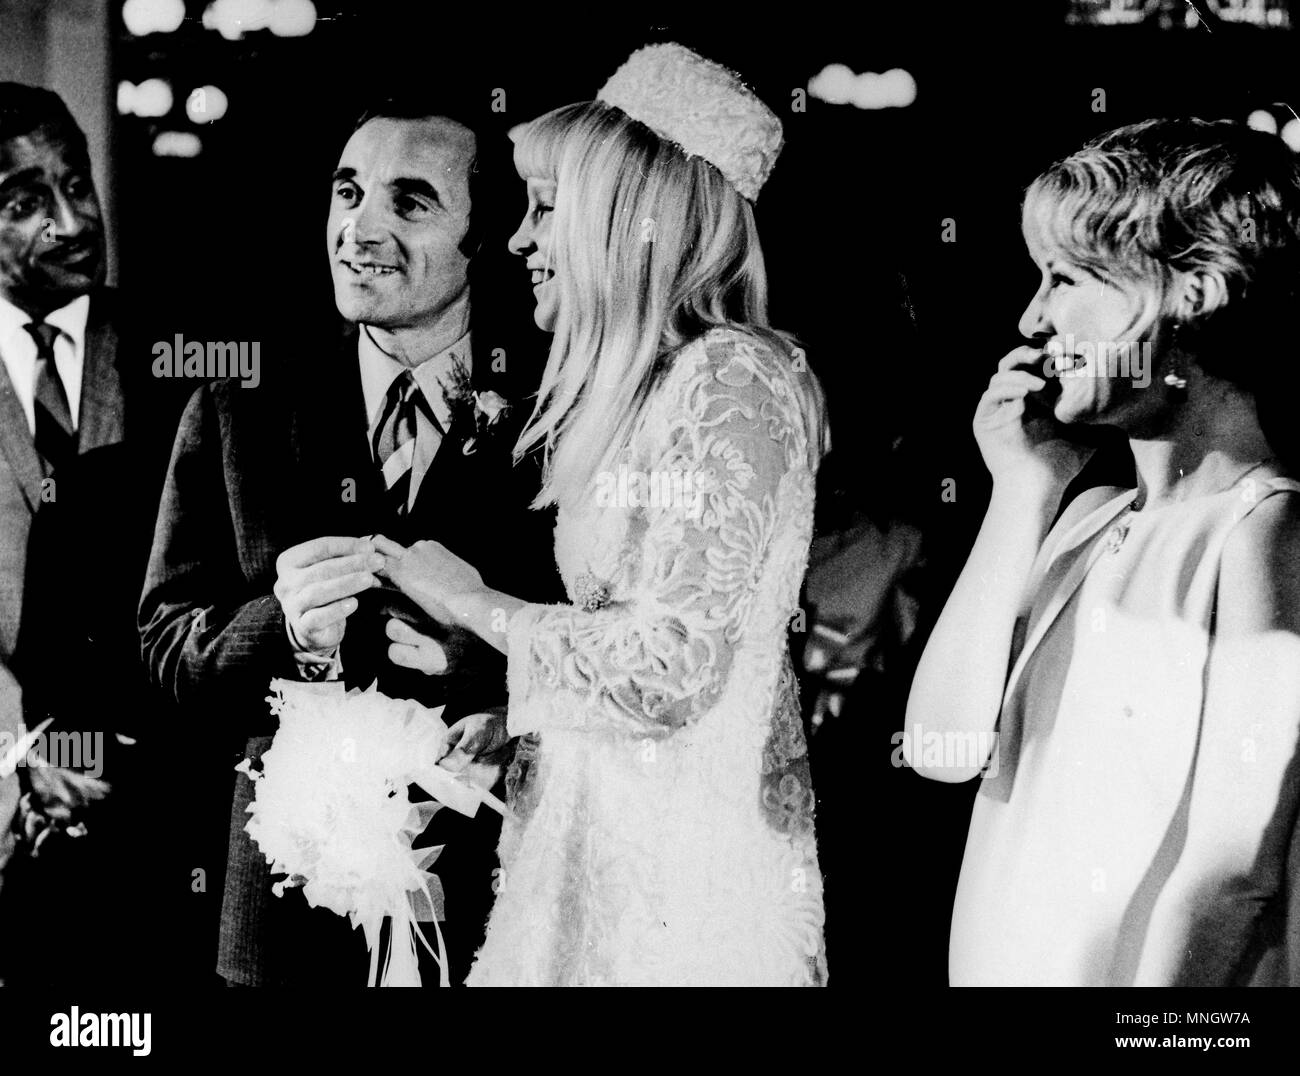 sammy davis jr and petula clark at the wedding of charles aznavour and ulla thorsell, las vegas 1967 - Stock Image